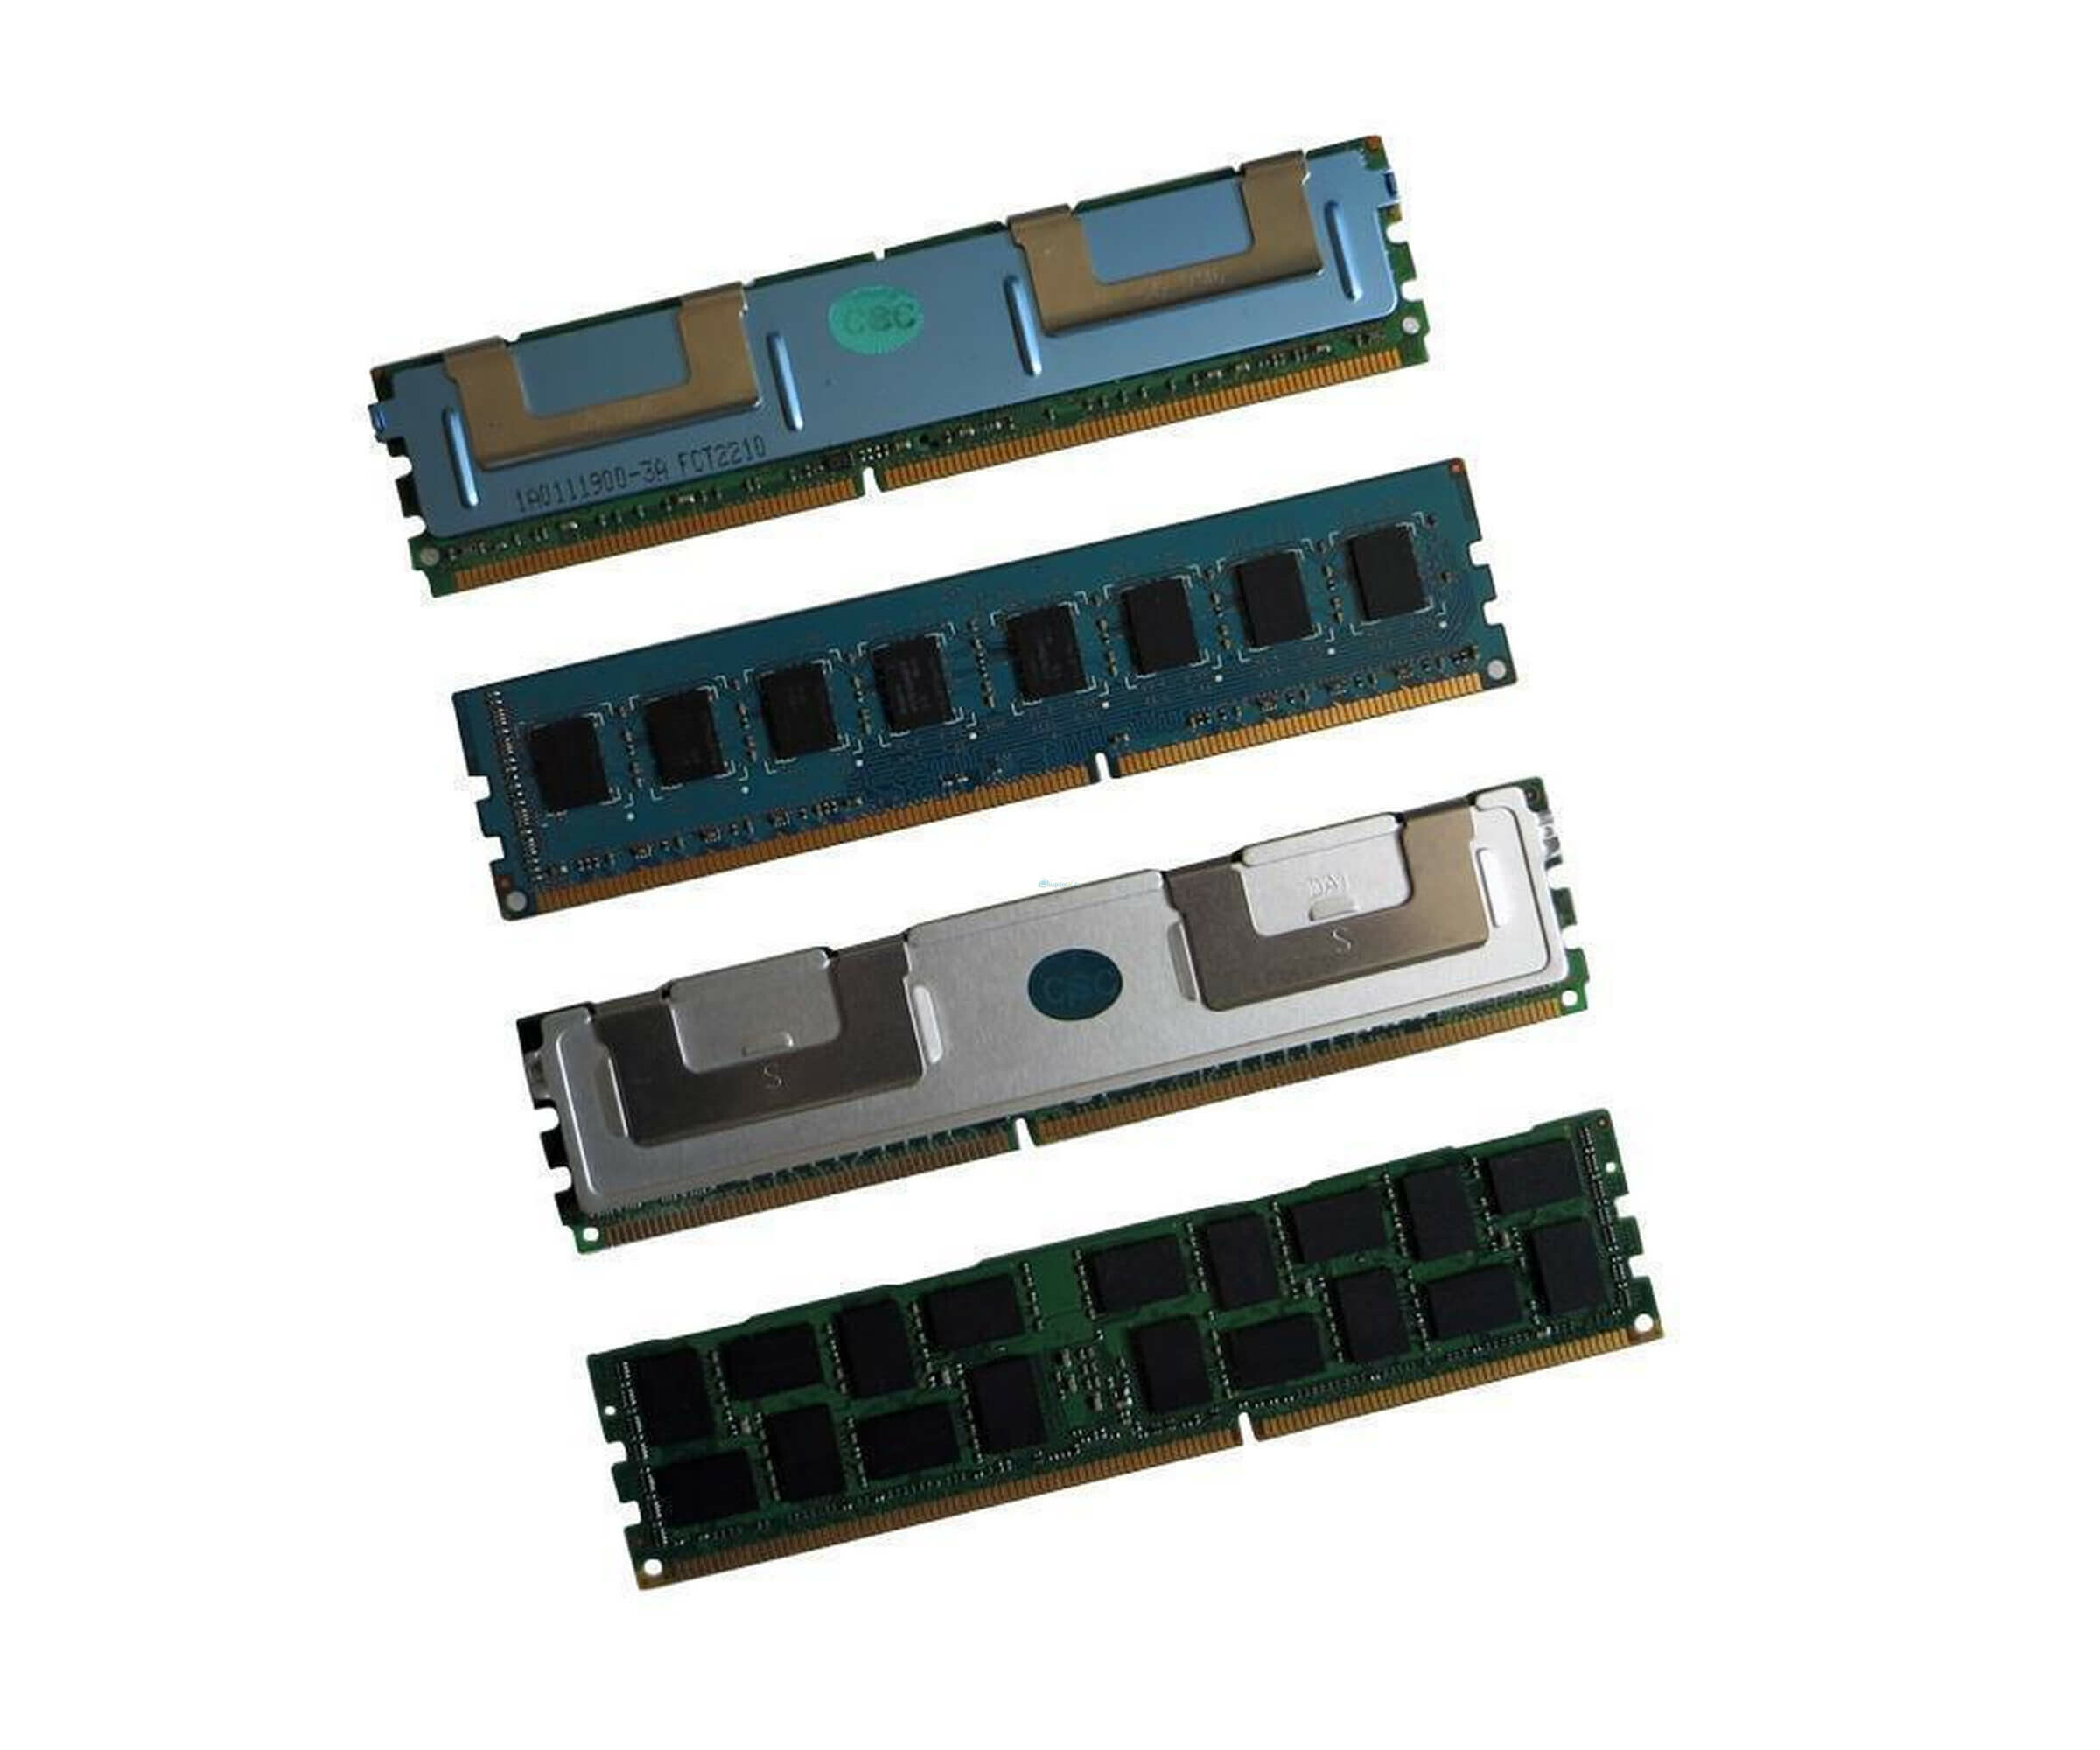 Sun 370-6203 Memory - 1 GB - PC-2100 - DIMM 184-PIN - DDR SDRAM